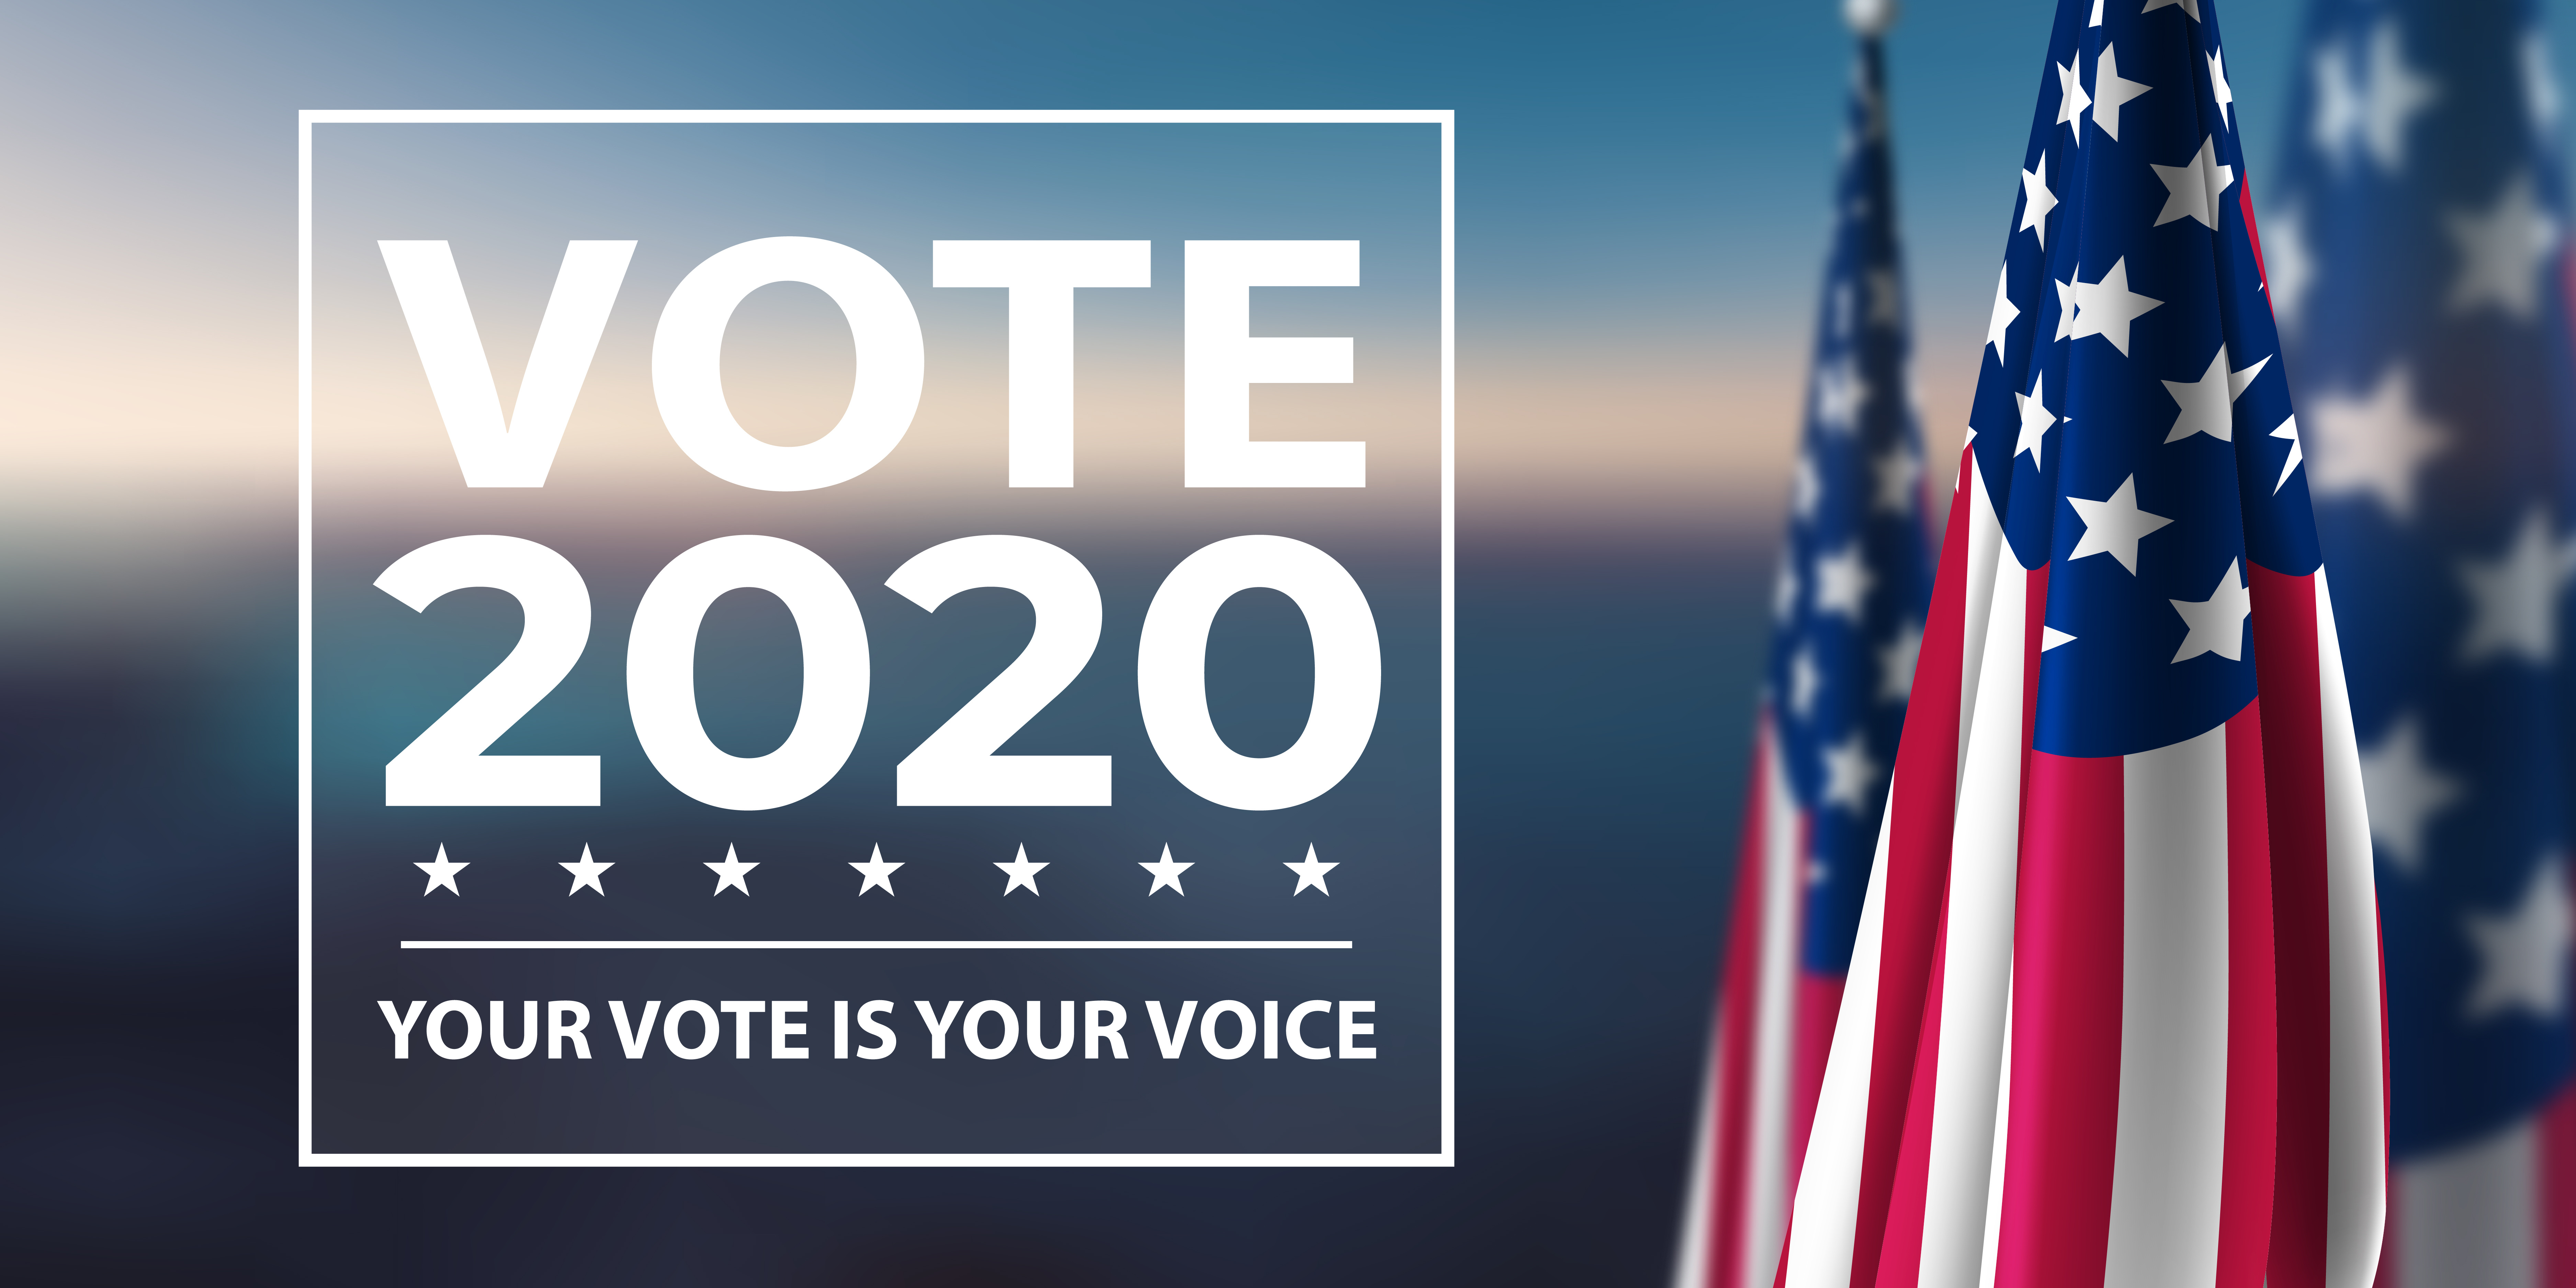 The words 'Vote 2020 - Your Vote is Your Voice' appear in white next to the American flag